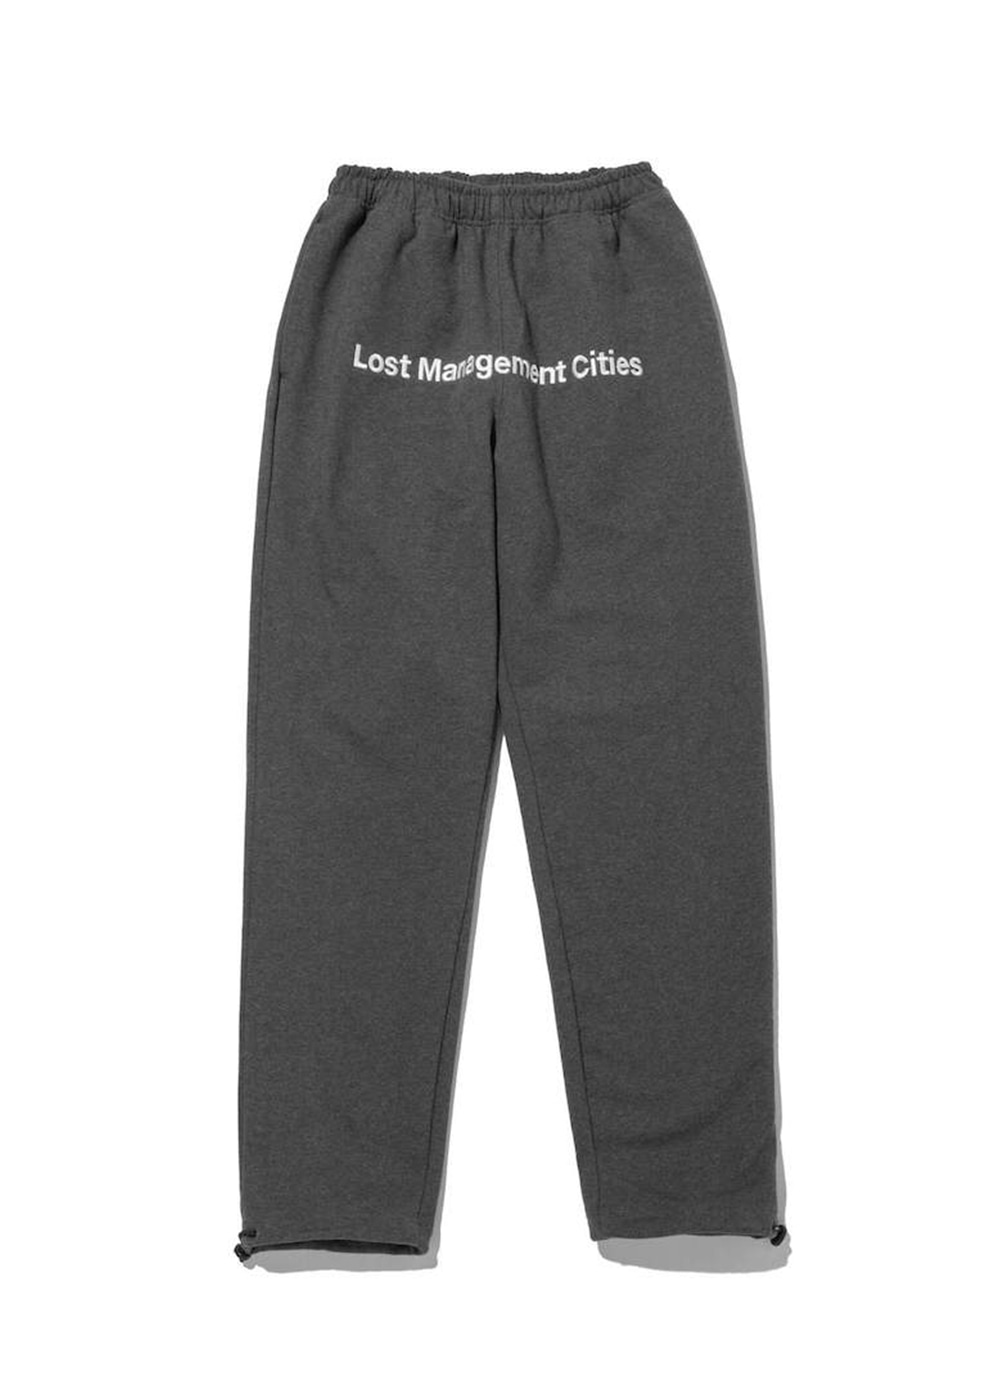 LMC FRONT LOGO SWEAT PANTS charcoal